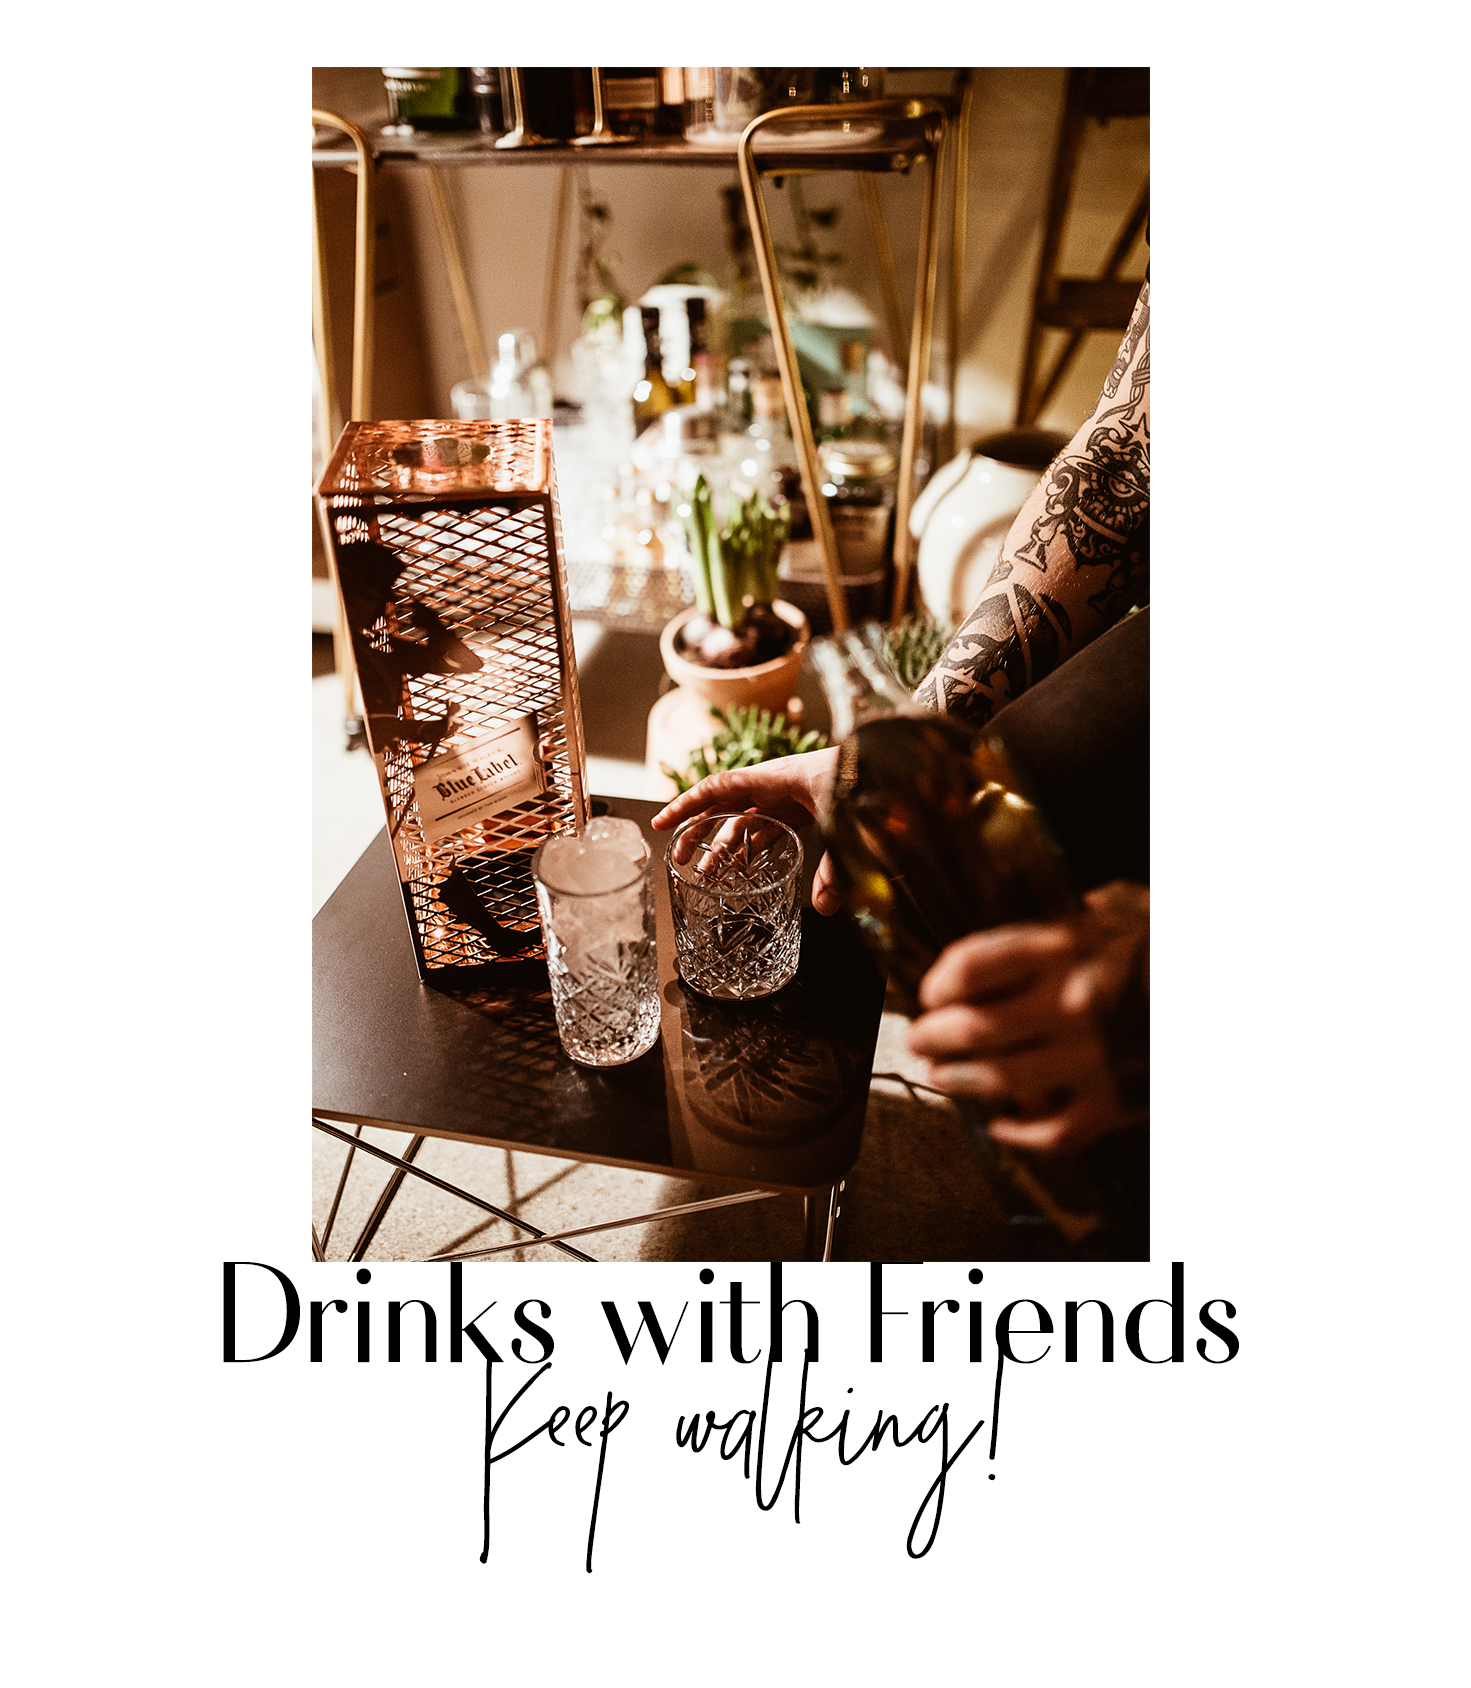 Drinks with Friends: Keep walking!